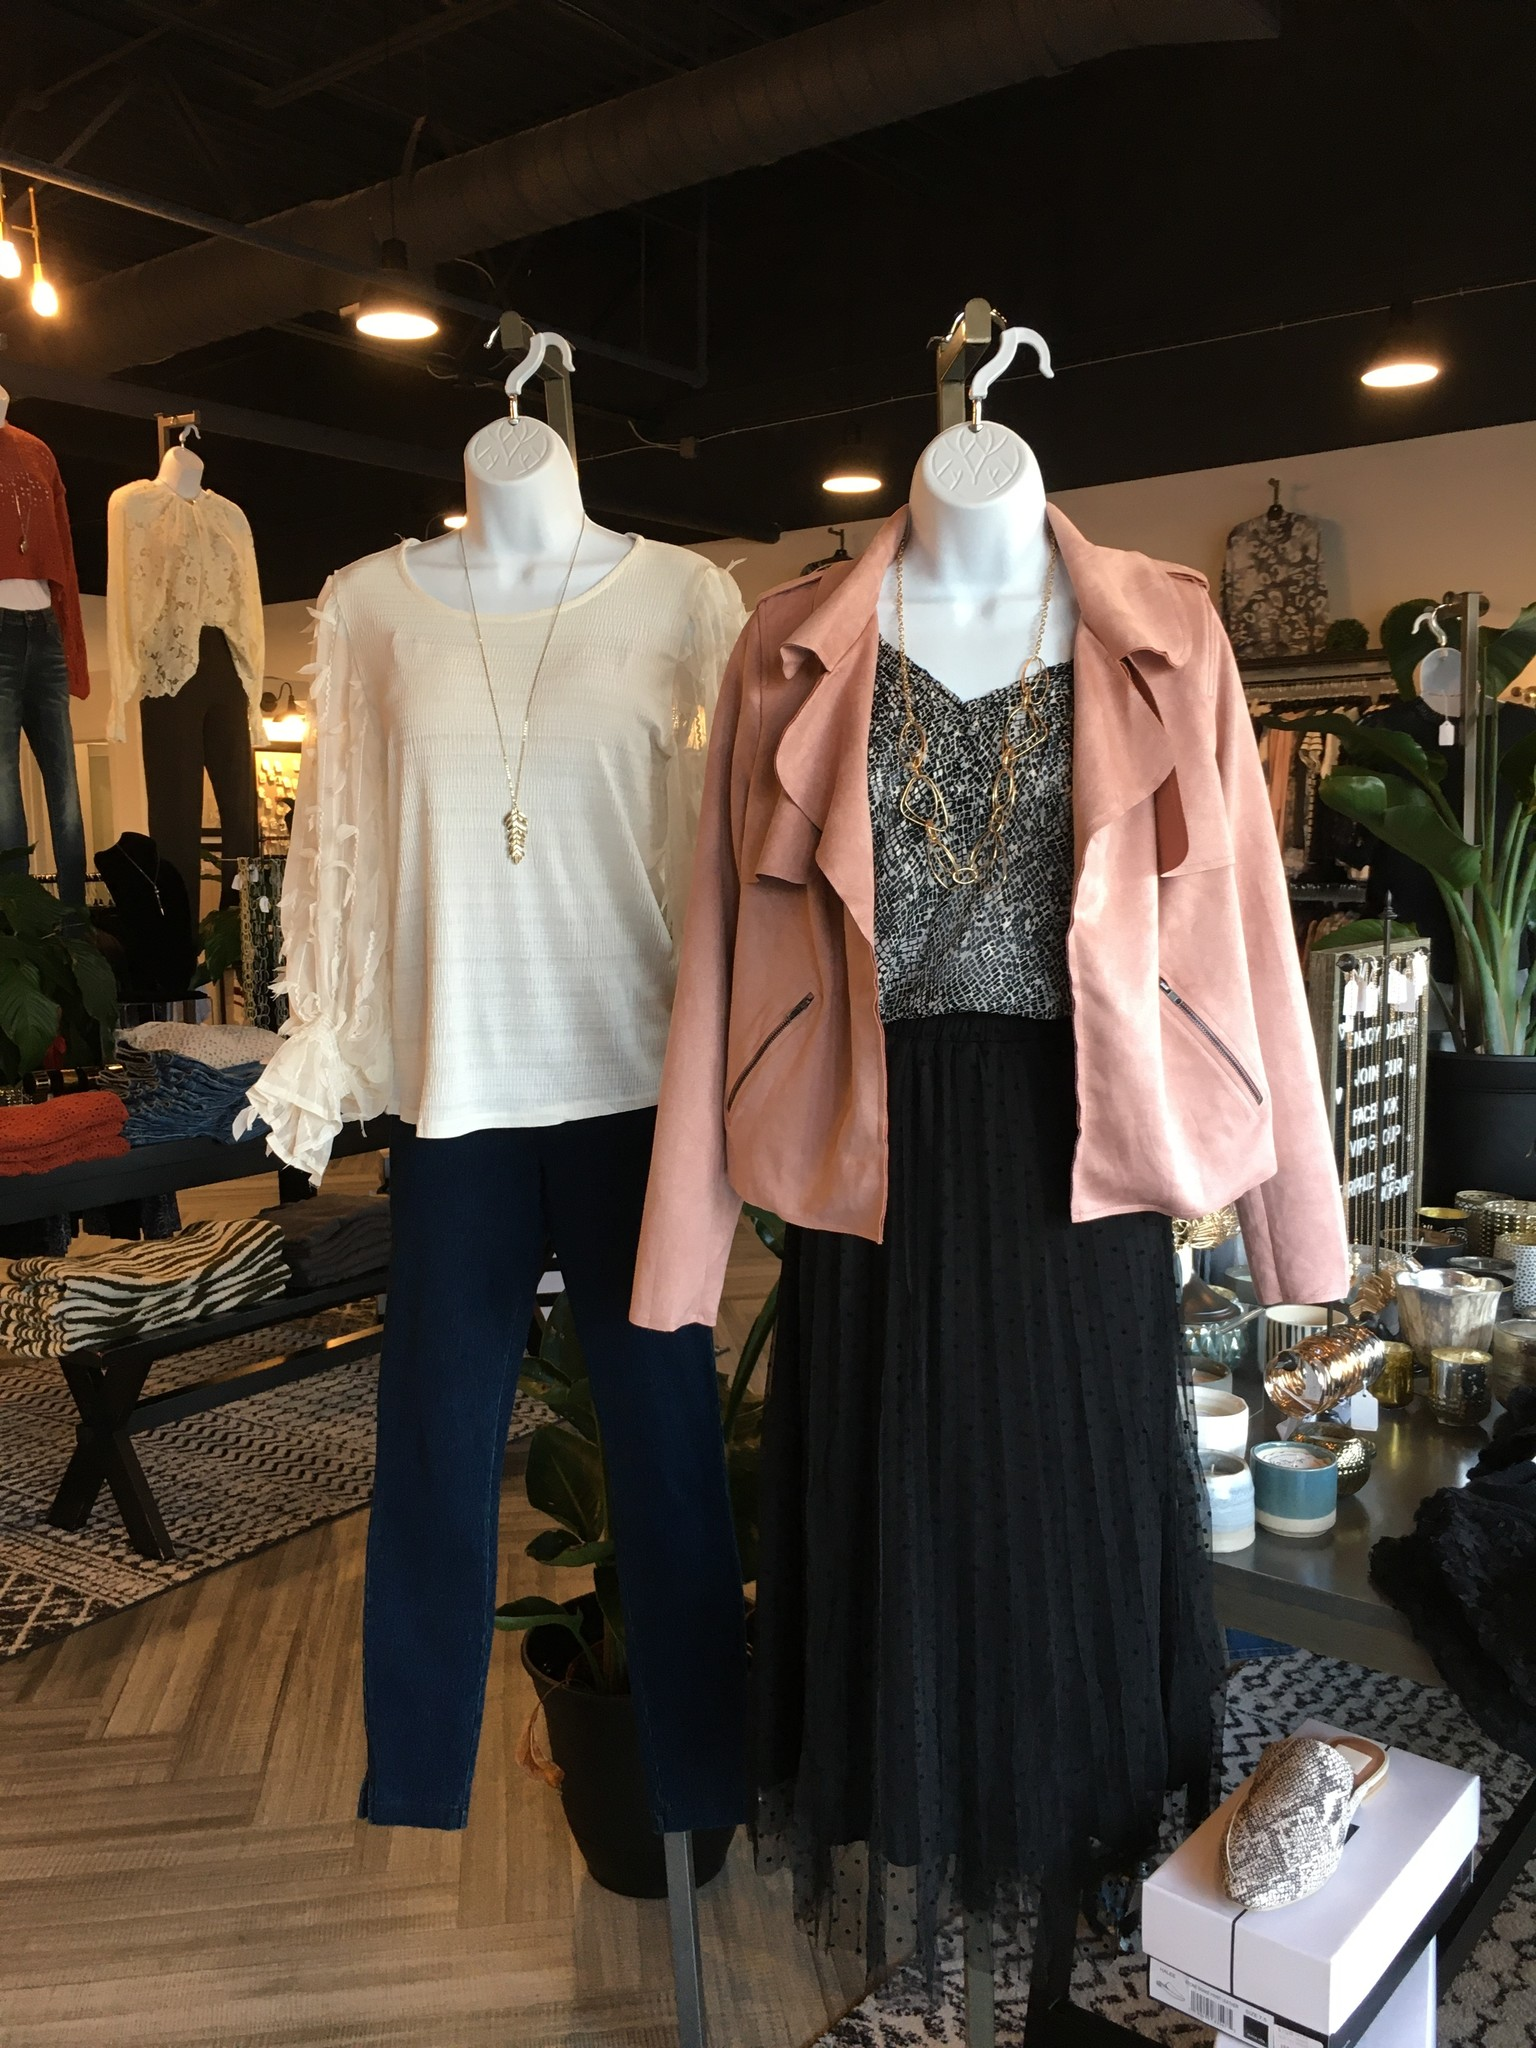 Tour of our Hoover Alabama Dear Prudence Location